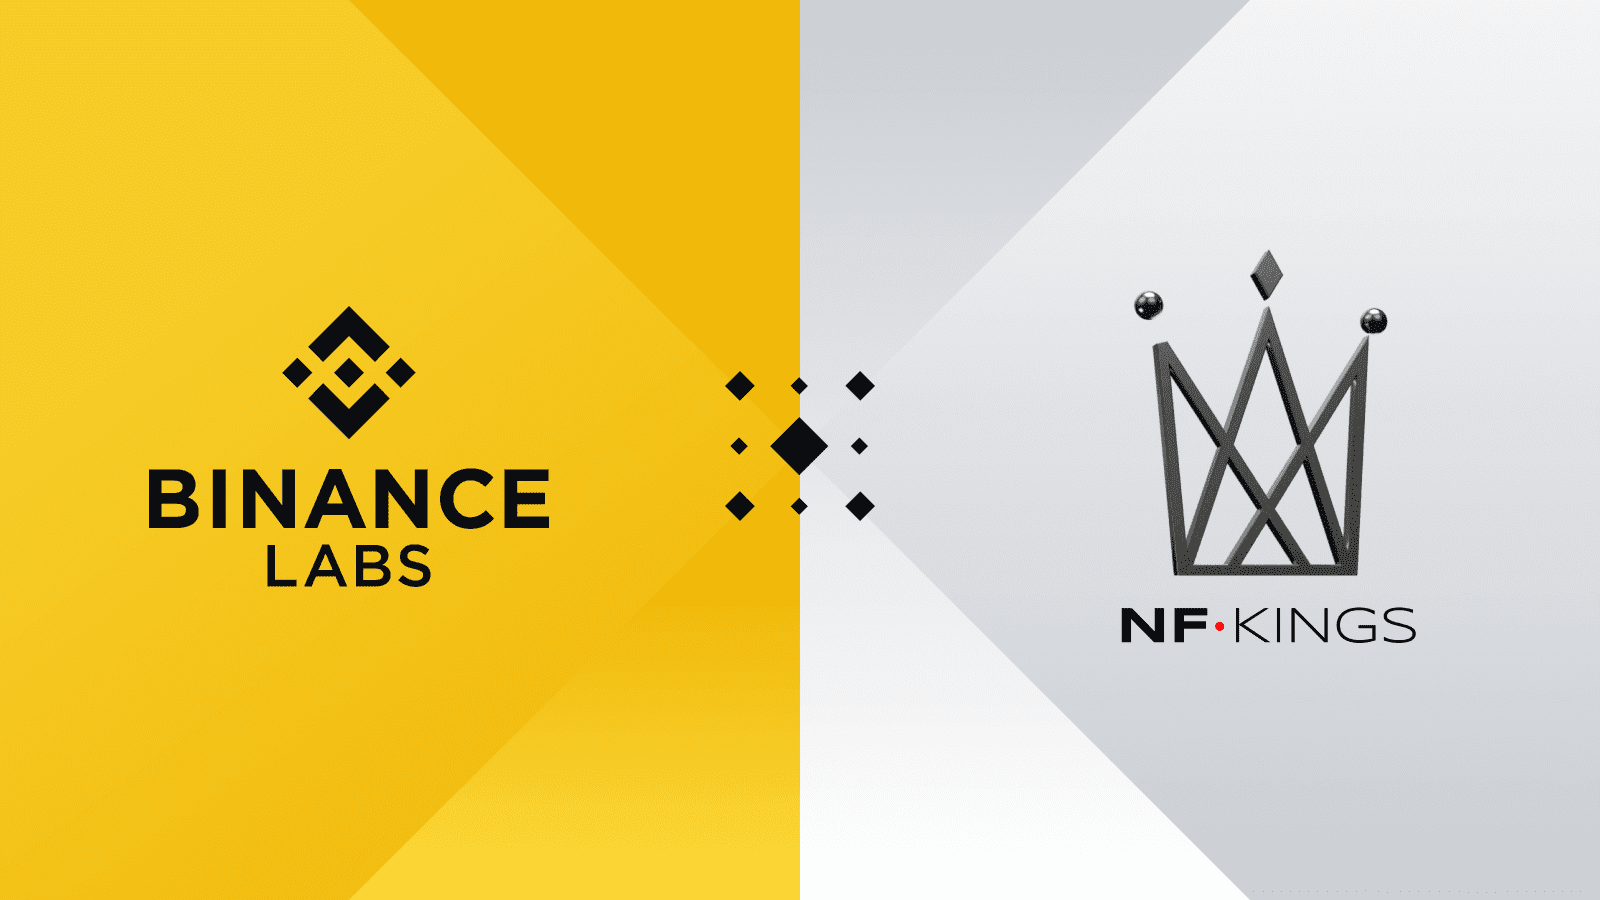 This Week at Binance: July 30 - Aug 6, 2021Cryptocurrency Trading Signals, Strategies & Templates   DexStrats